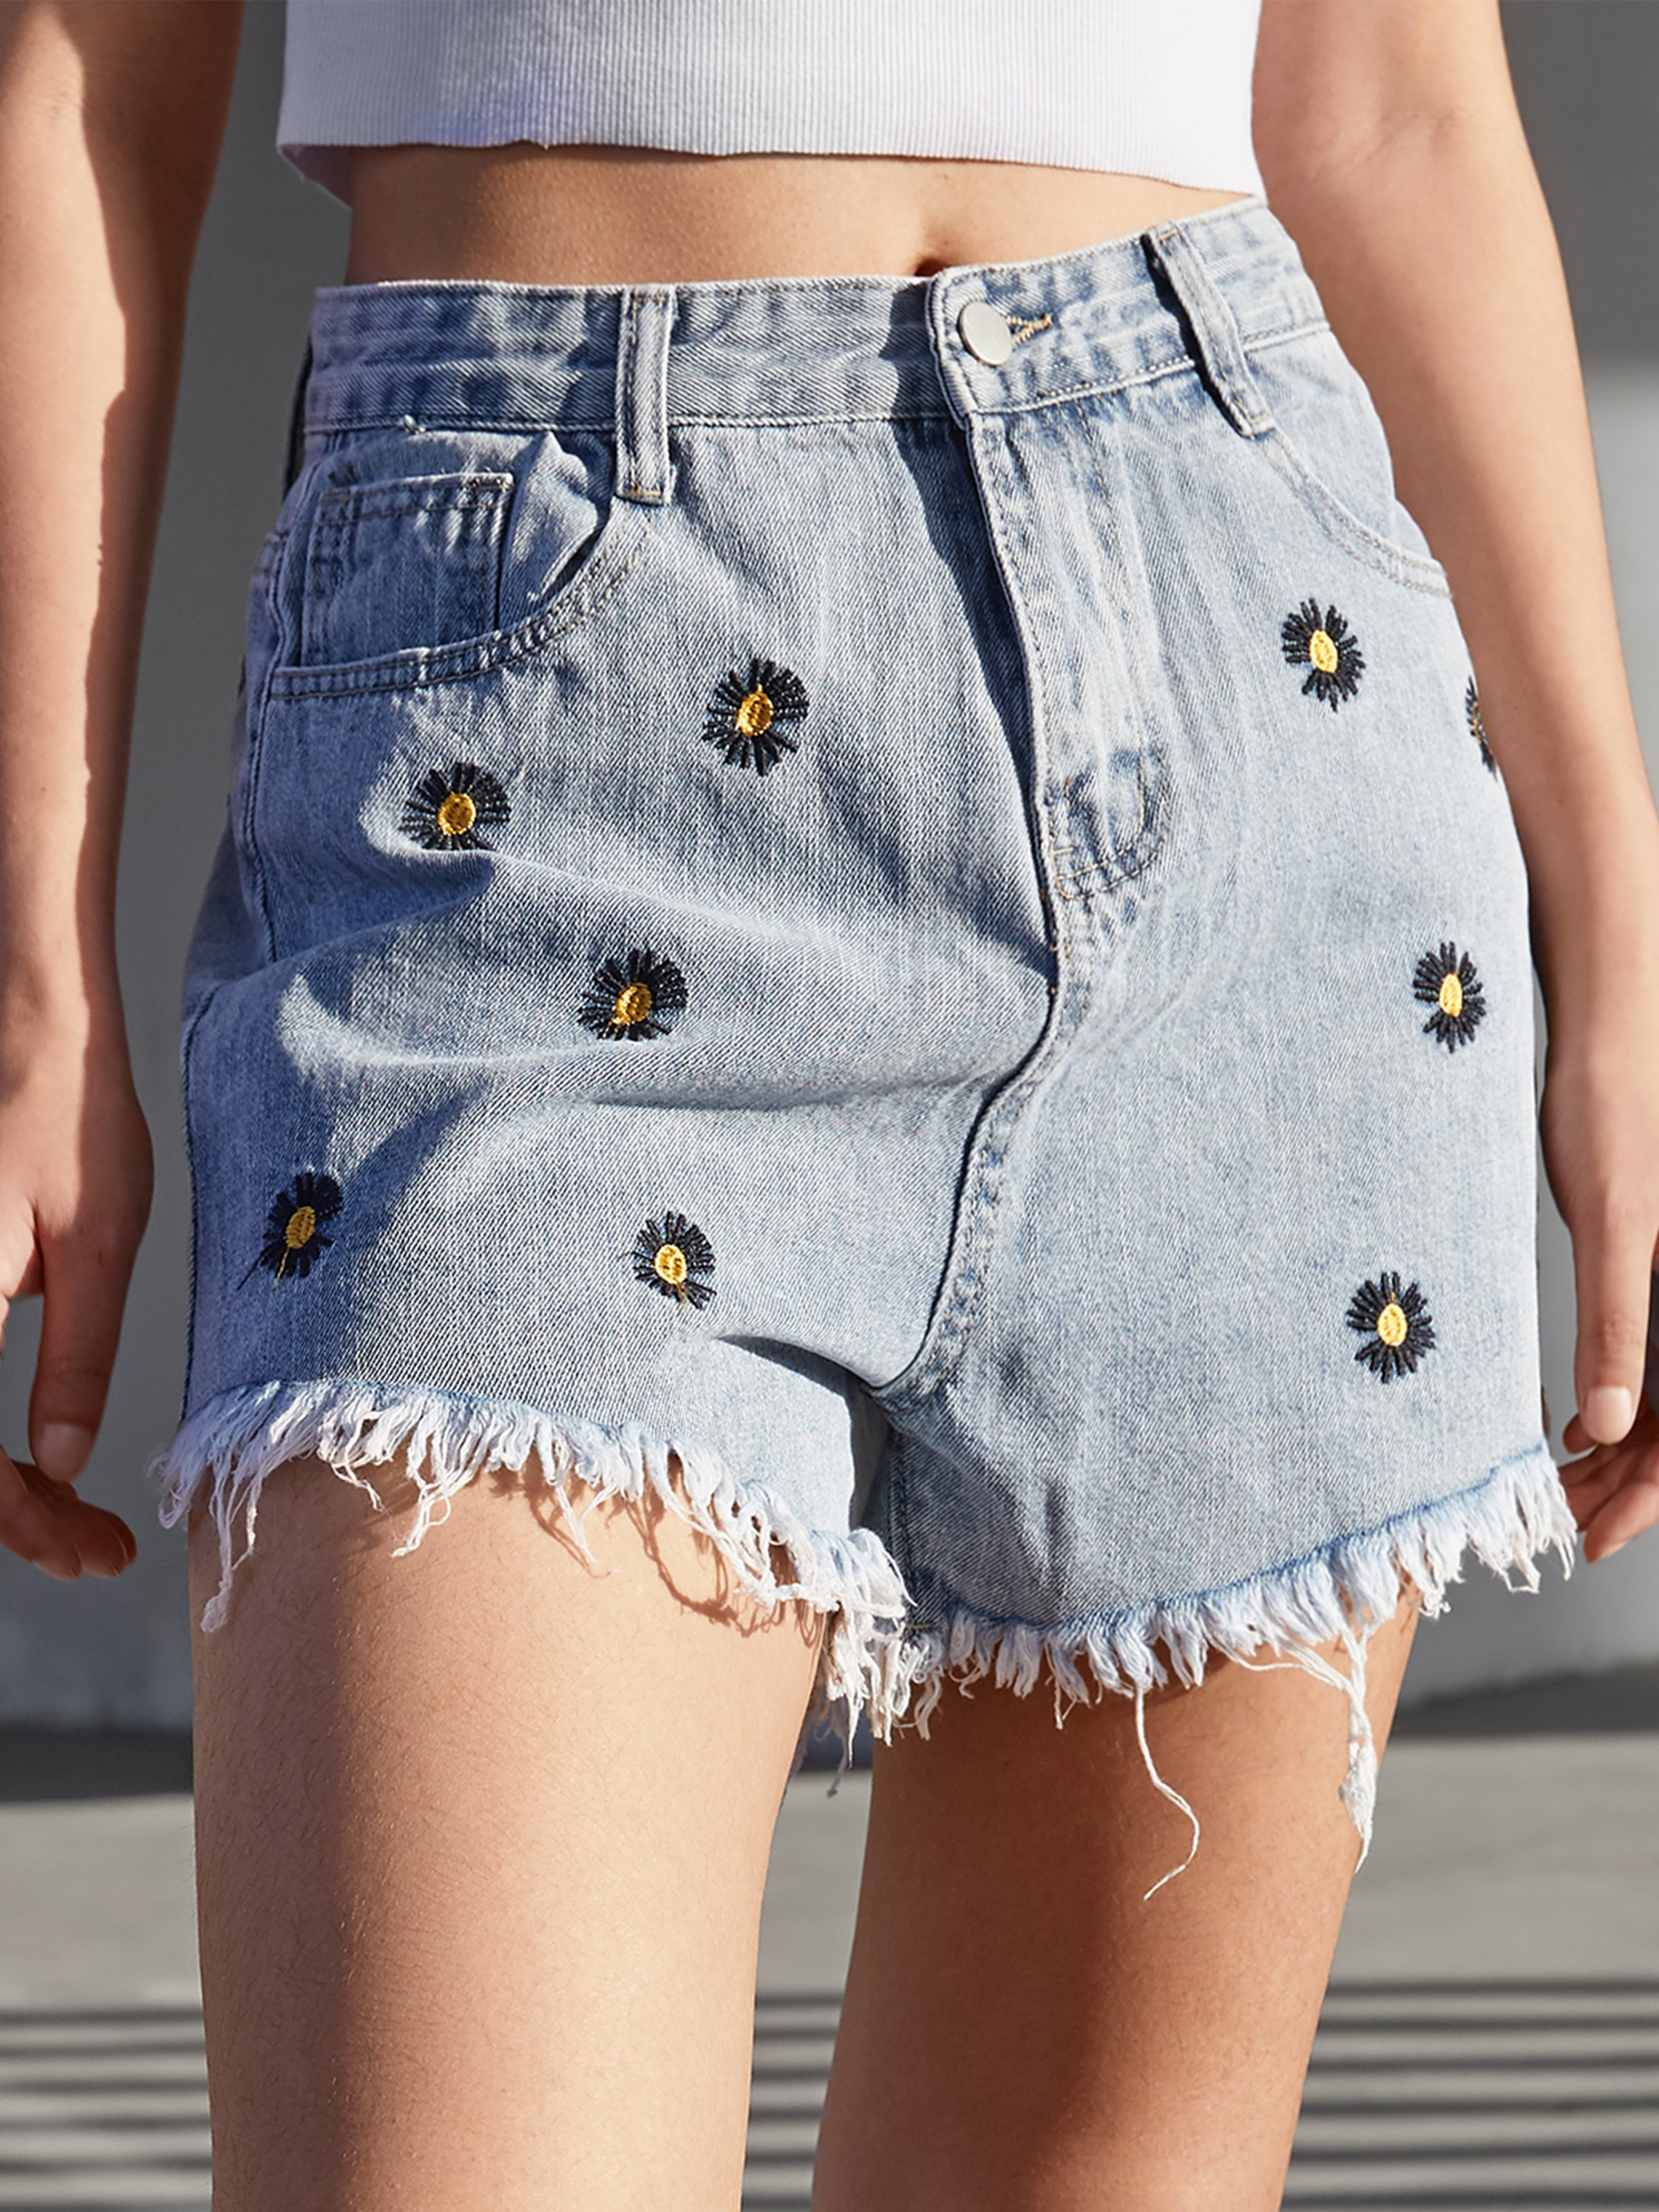 Daisy Embroidered Denim Shorts - Blue XL